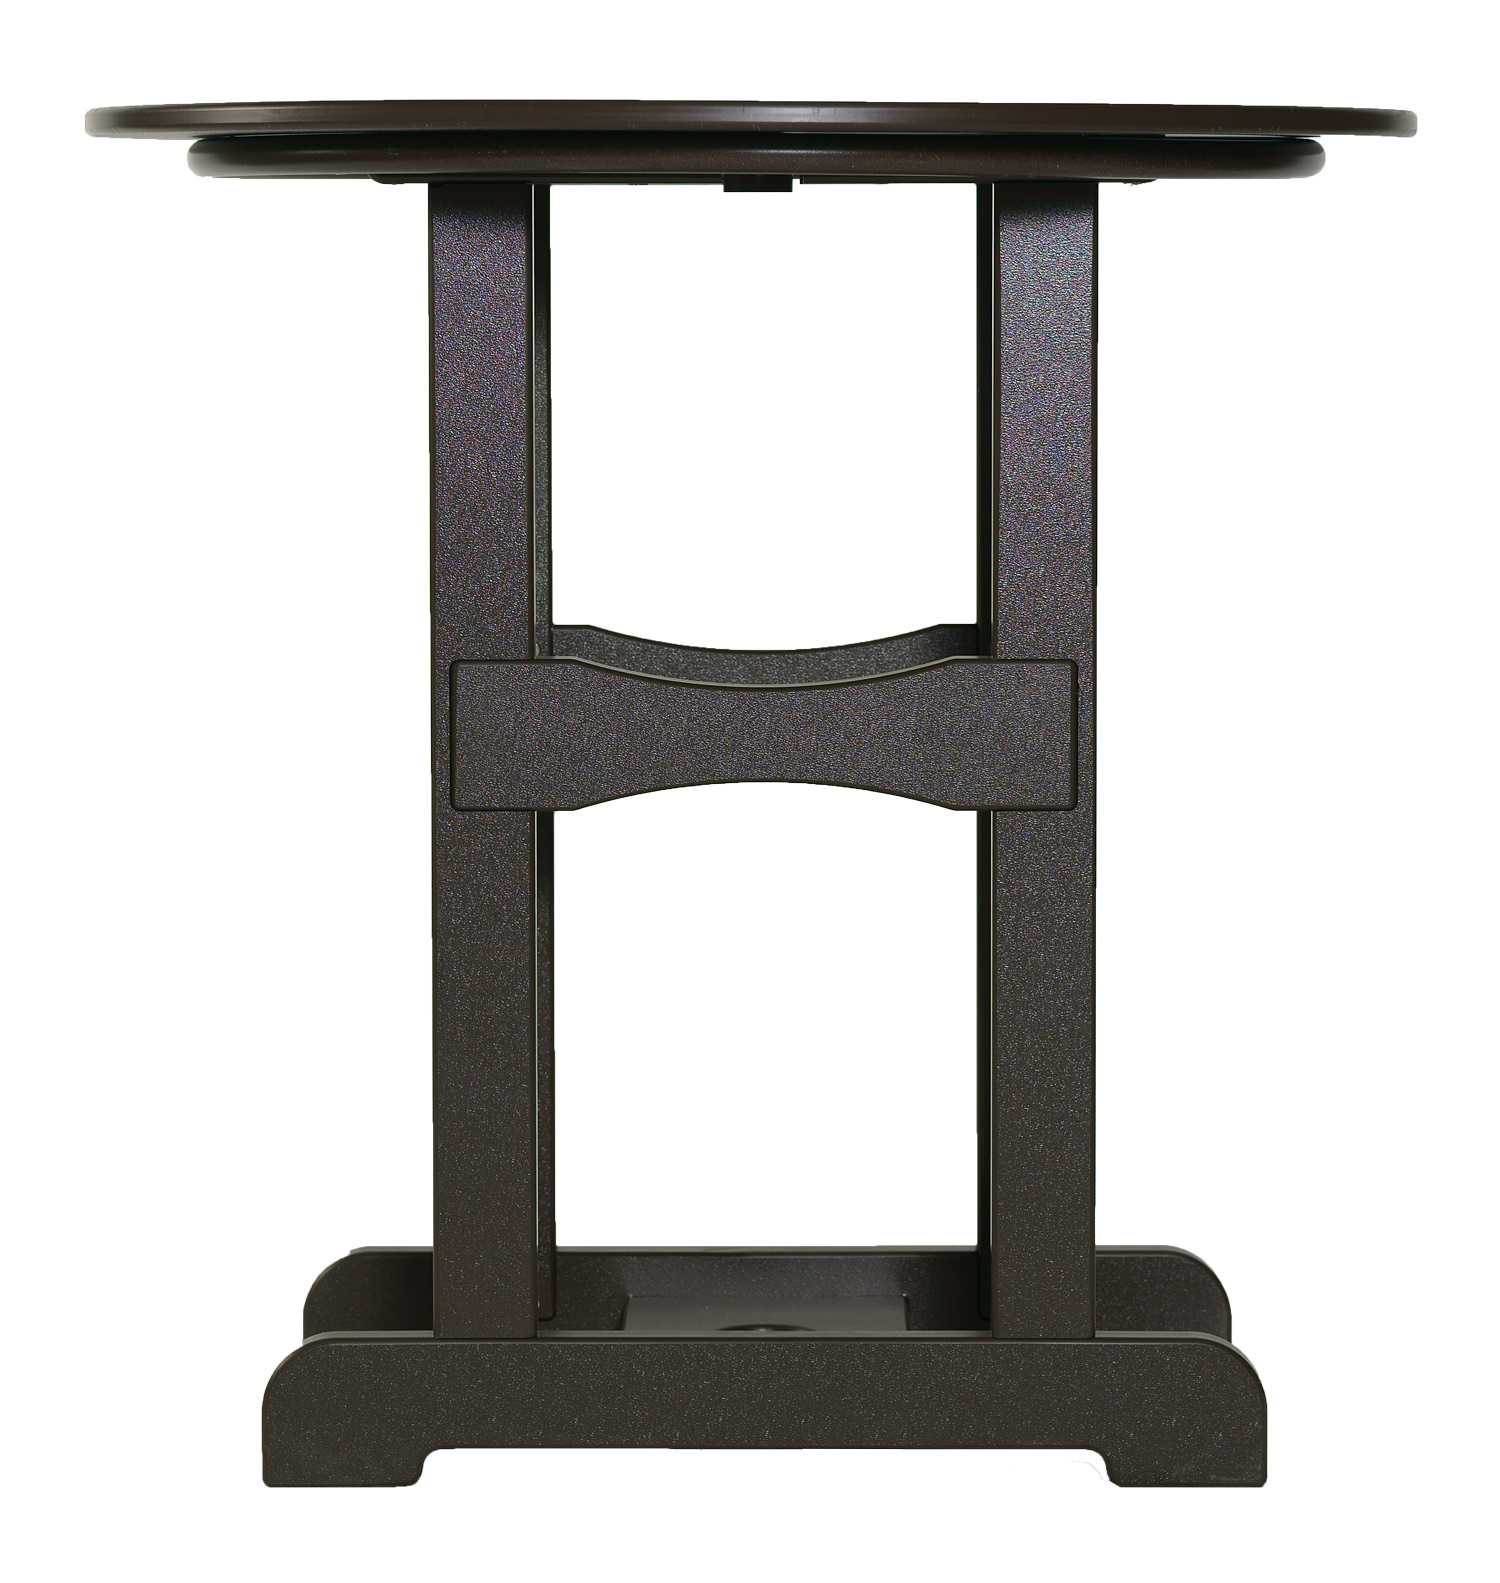 Previous; Next. Home · Tables · Bar Tables; Large Round ...